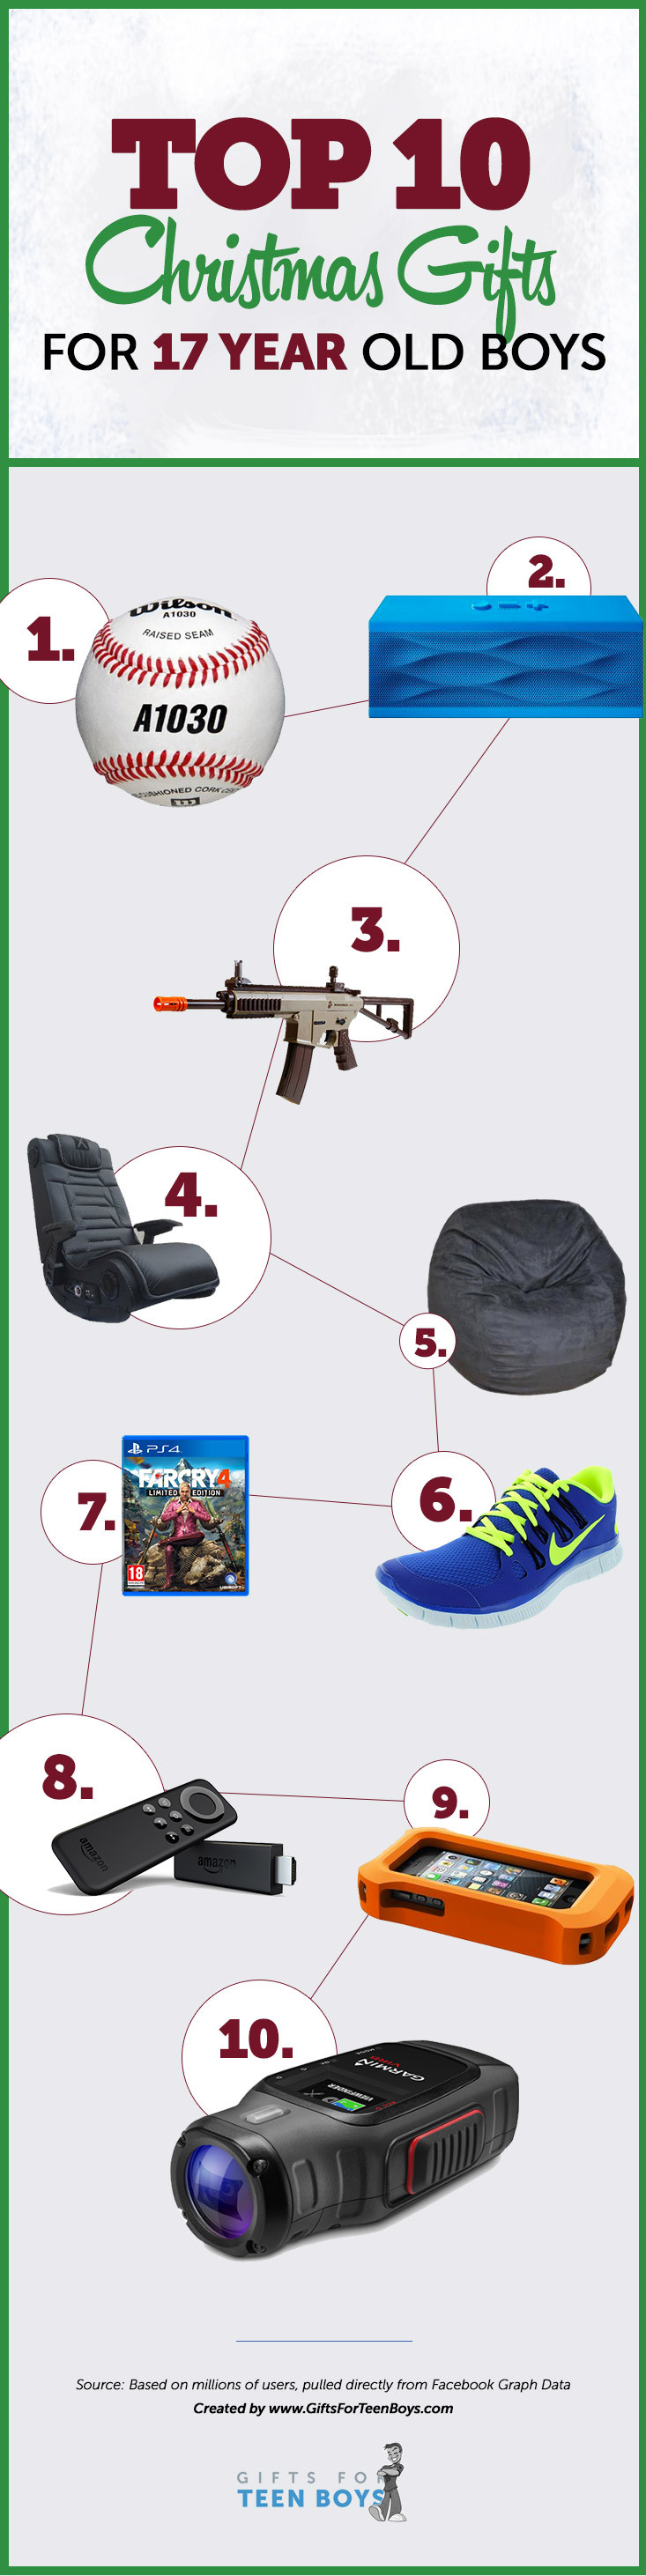 Best ideas about Gift Ideas For 17 Year Old Boy . Save or Pin Christmas Gifts 17 Year Old Boys Now.